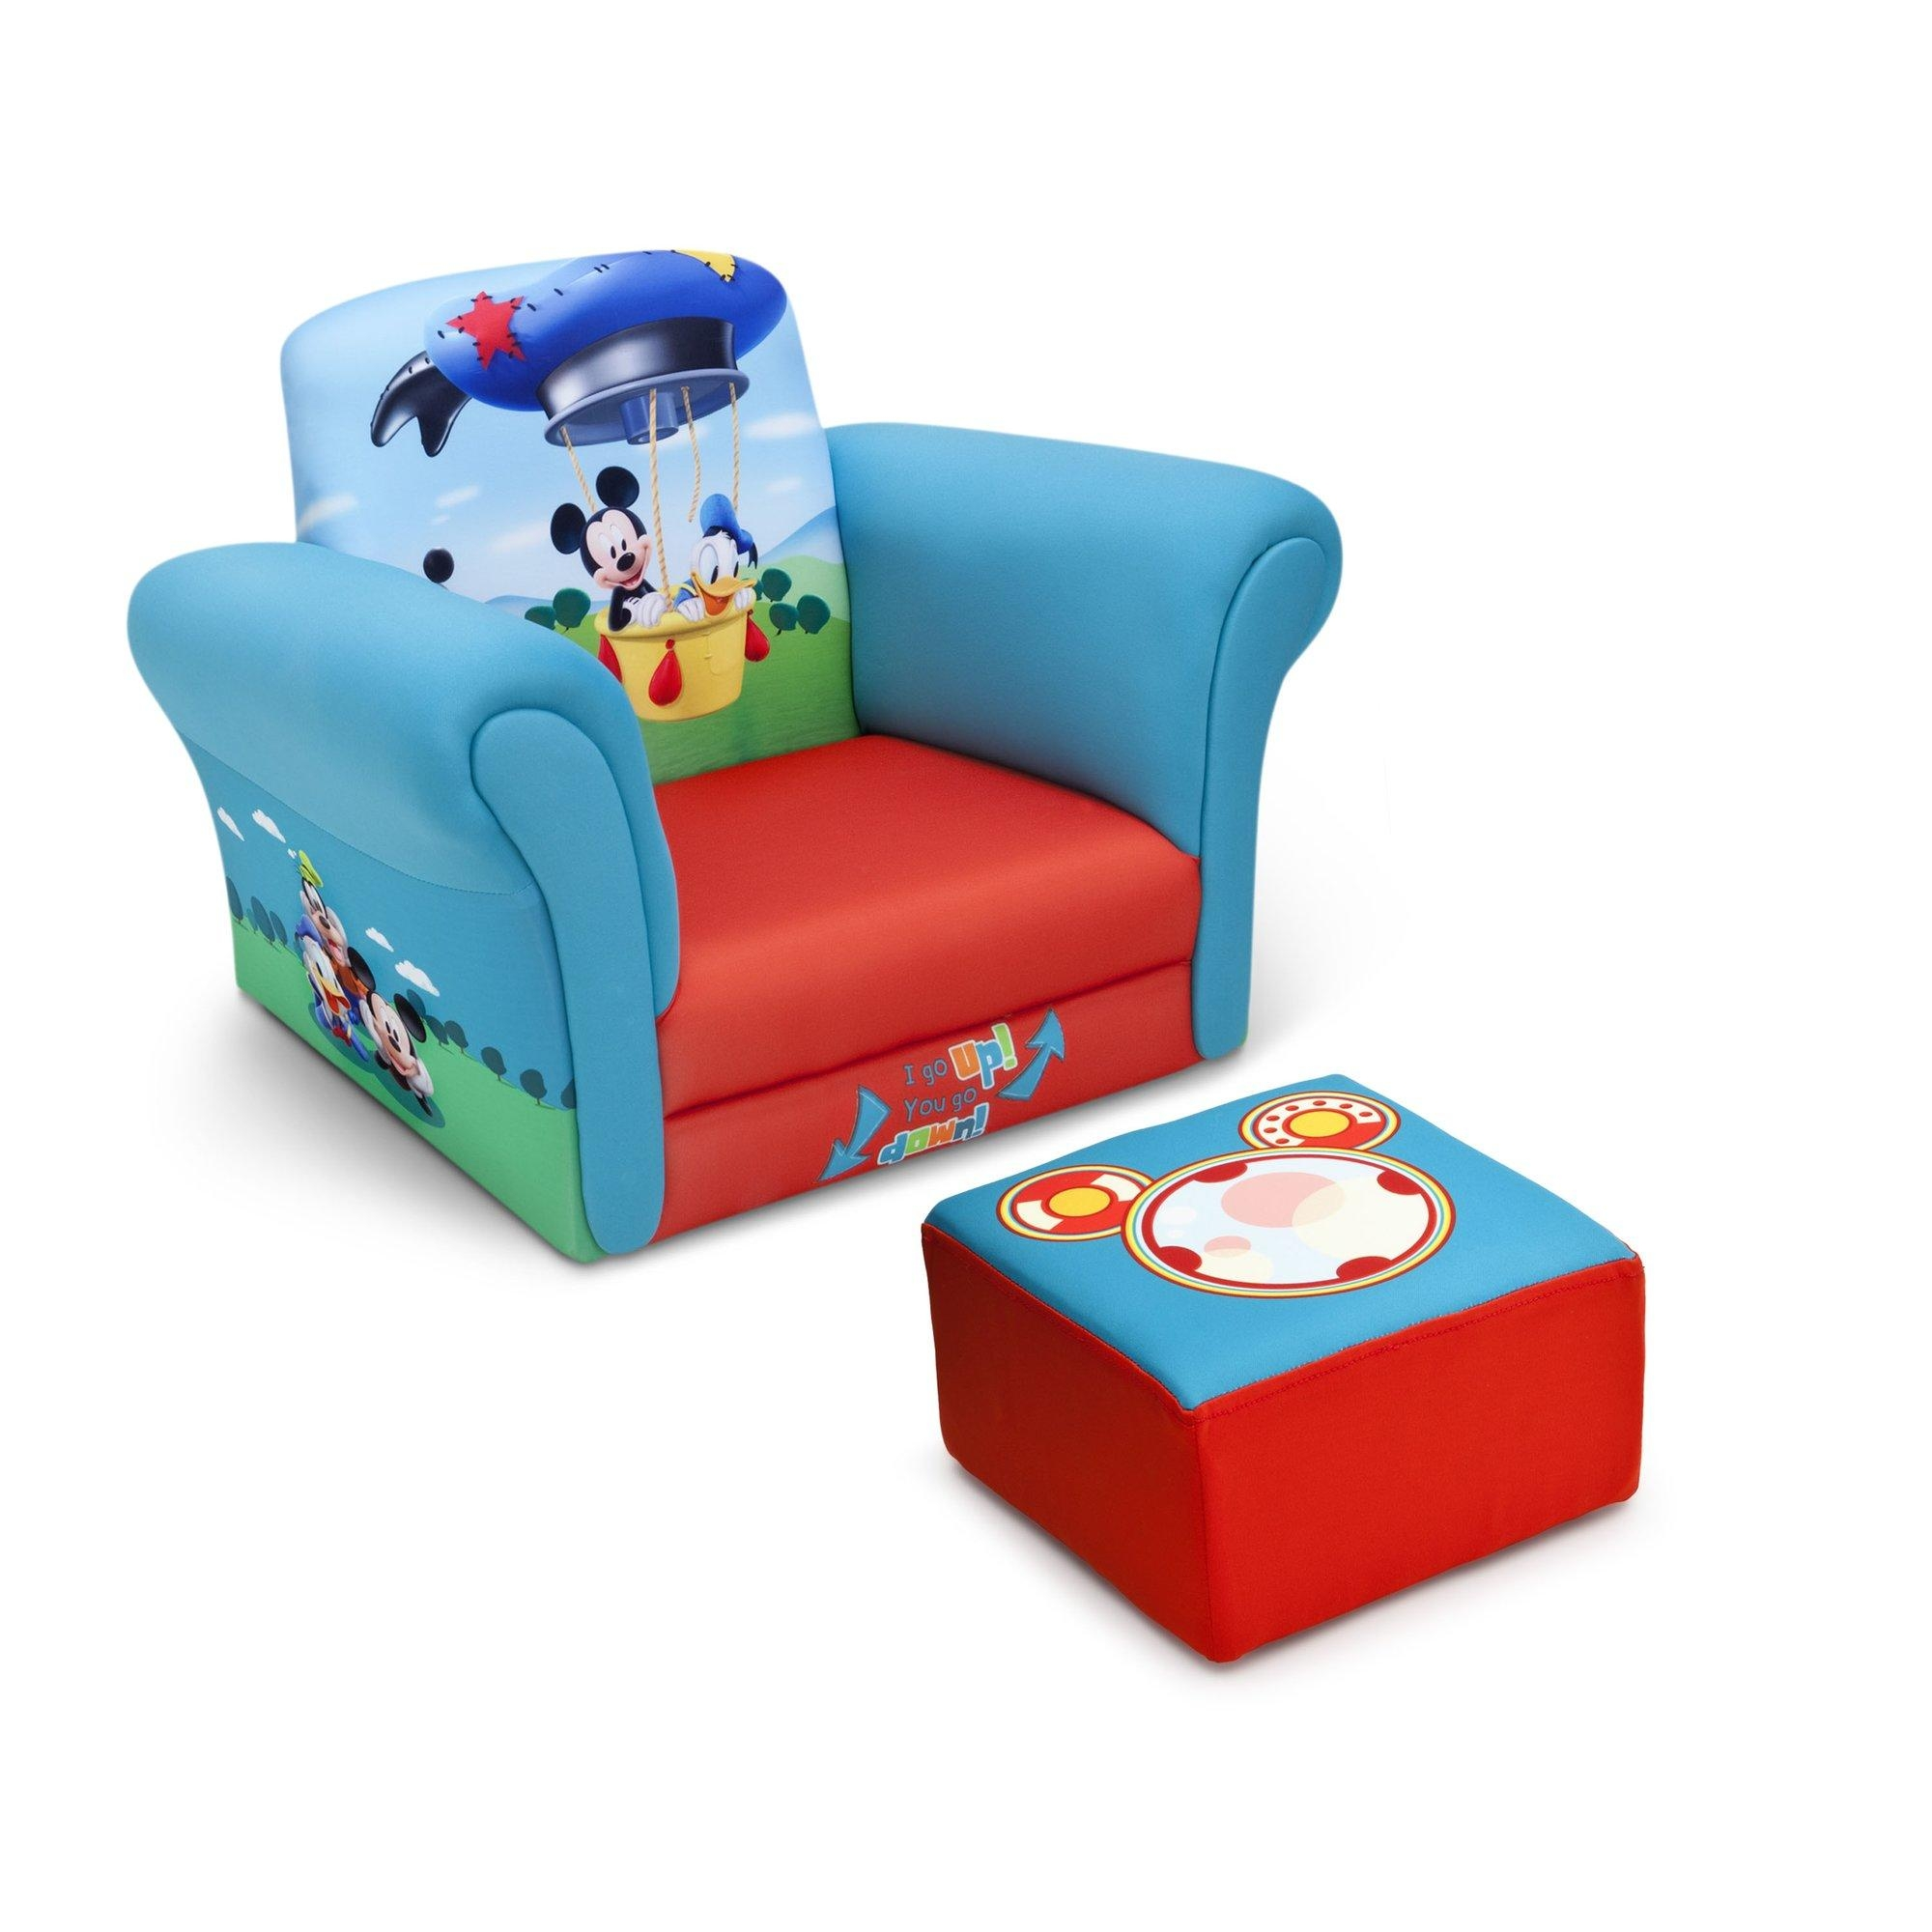 Sofa Chair For Toddler 20 Top Kids Sofa Chair And Ottoman Set Zebra Sofa Ideas